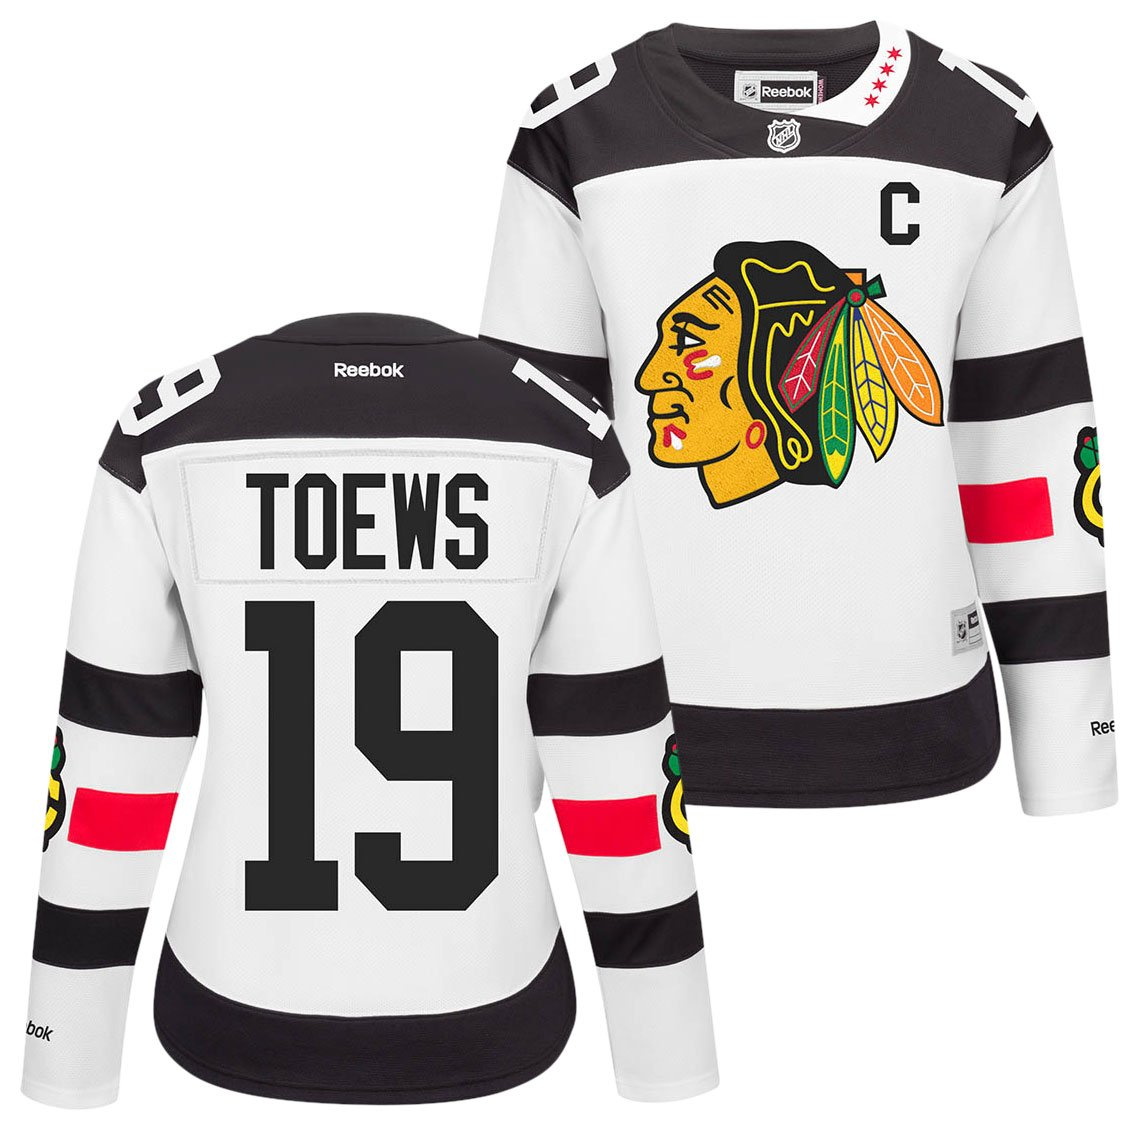 67b8c12a209 Amazon.com : Reebok Jonathan Toews Chicago Blackhawks NHL Womens White  Stadium Series Premier Jersey : Clothing